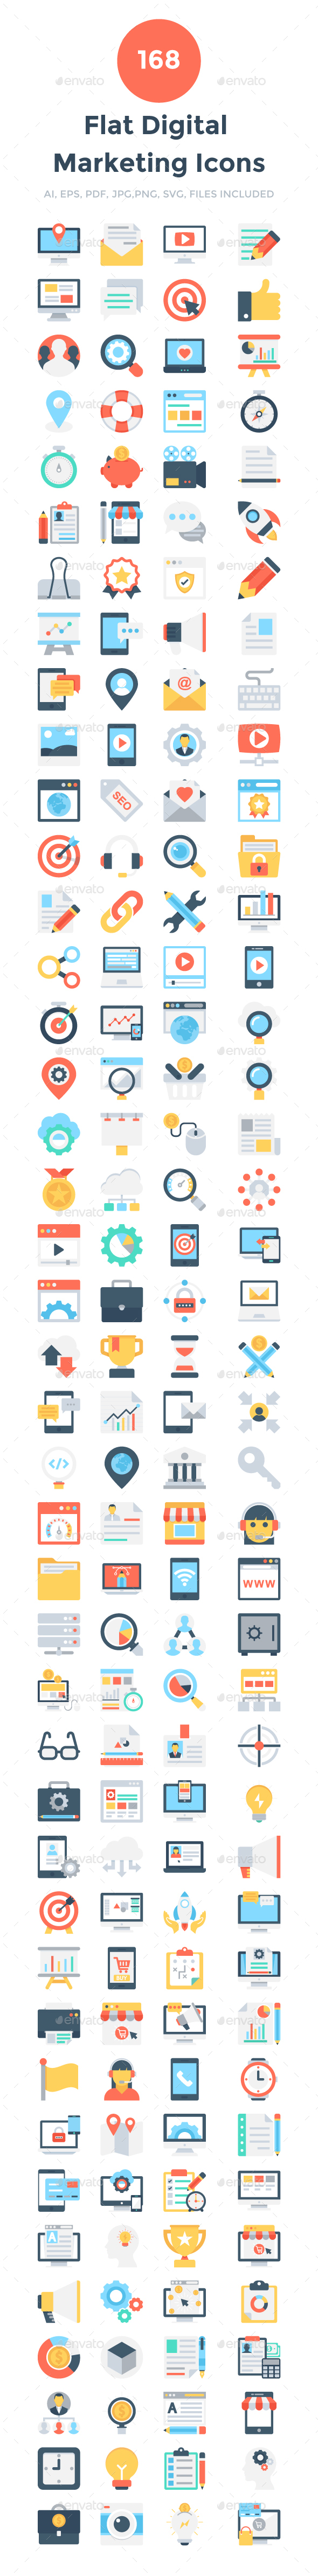 168 Flat Digital Marketing Icons - Icons